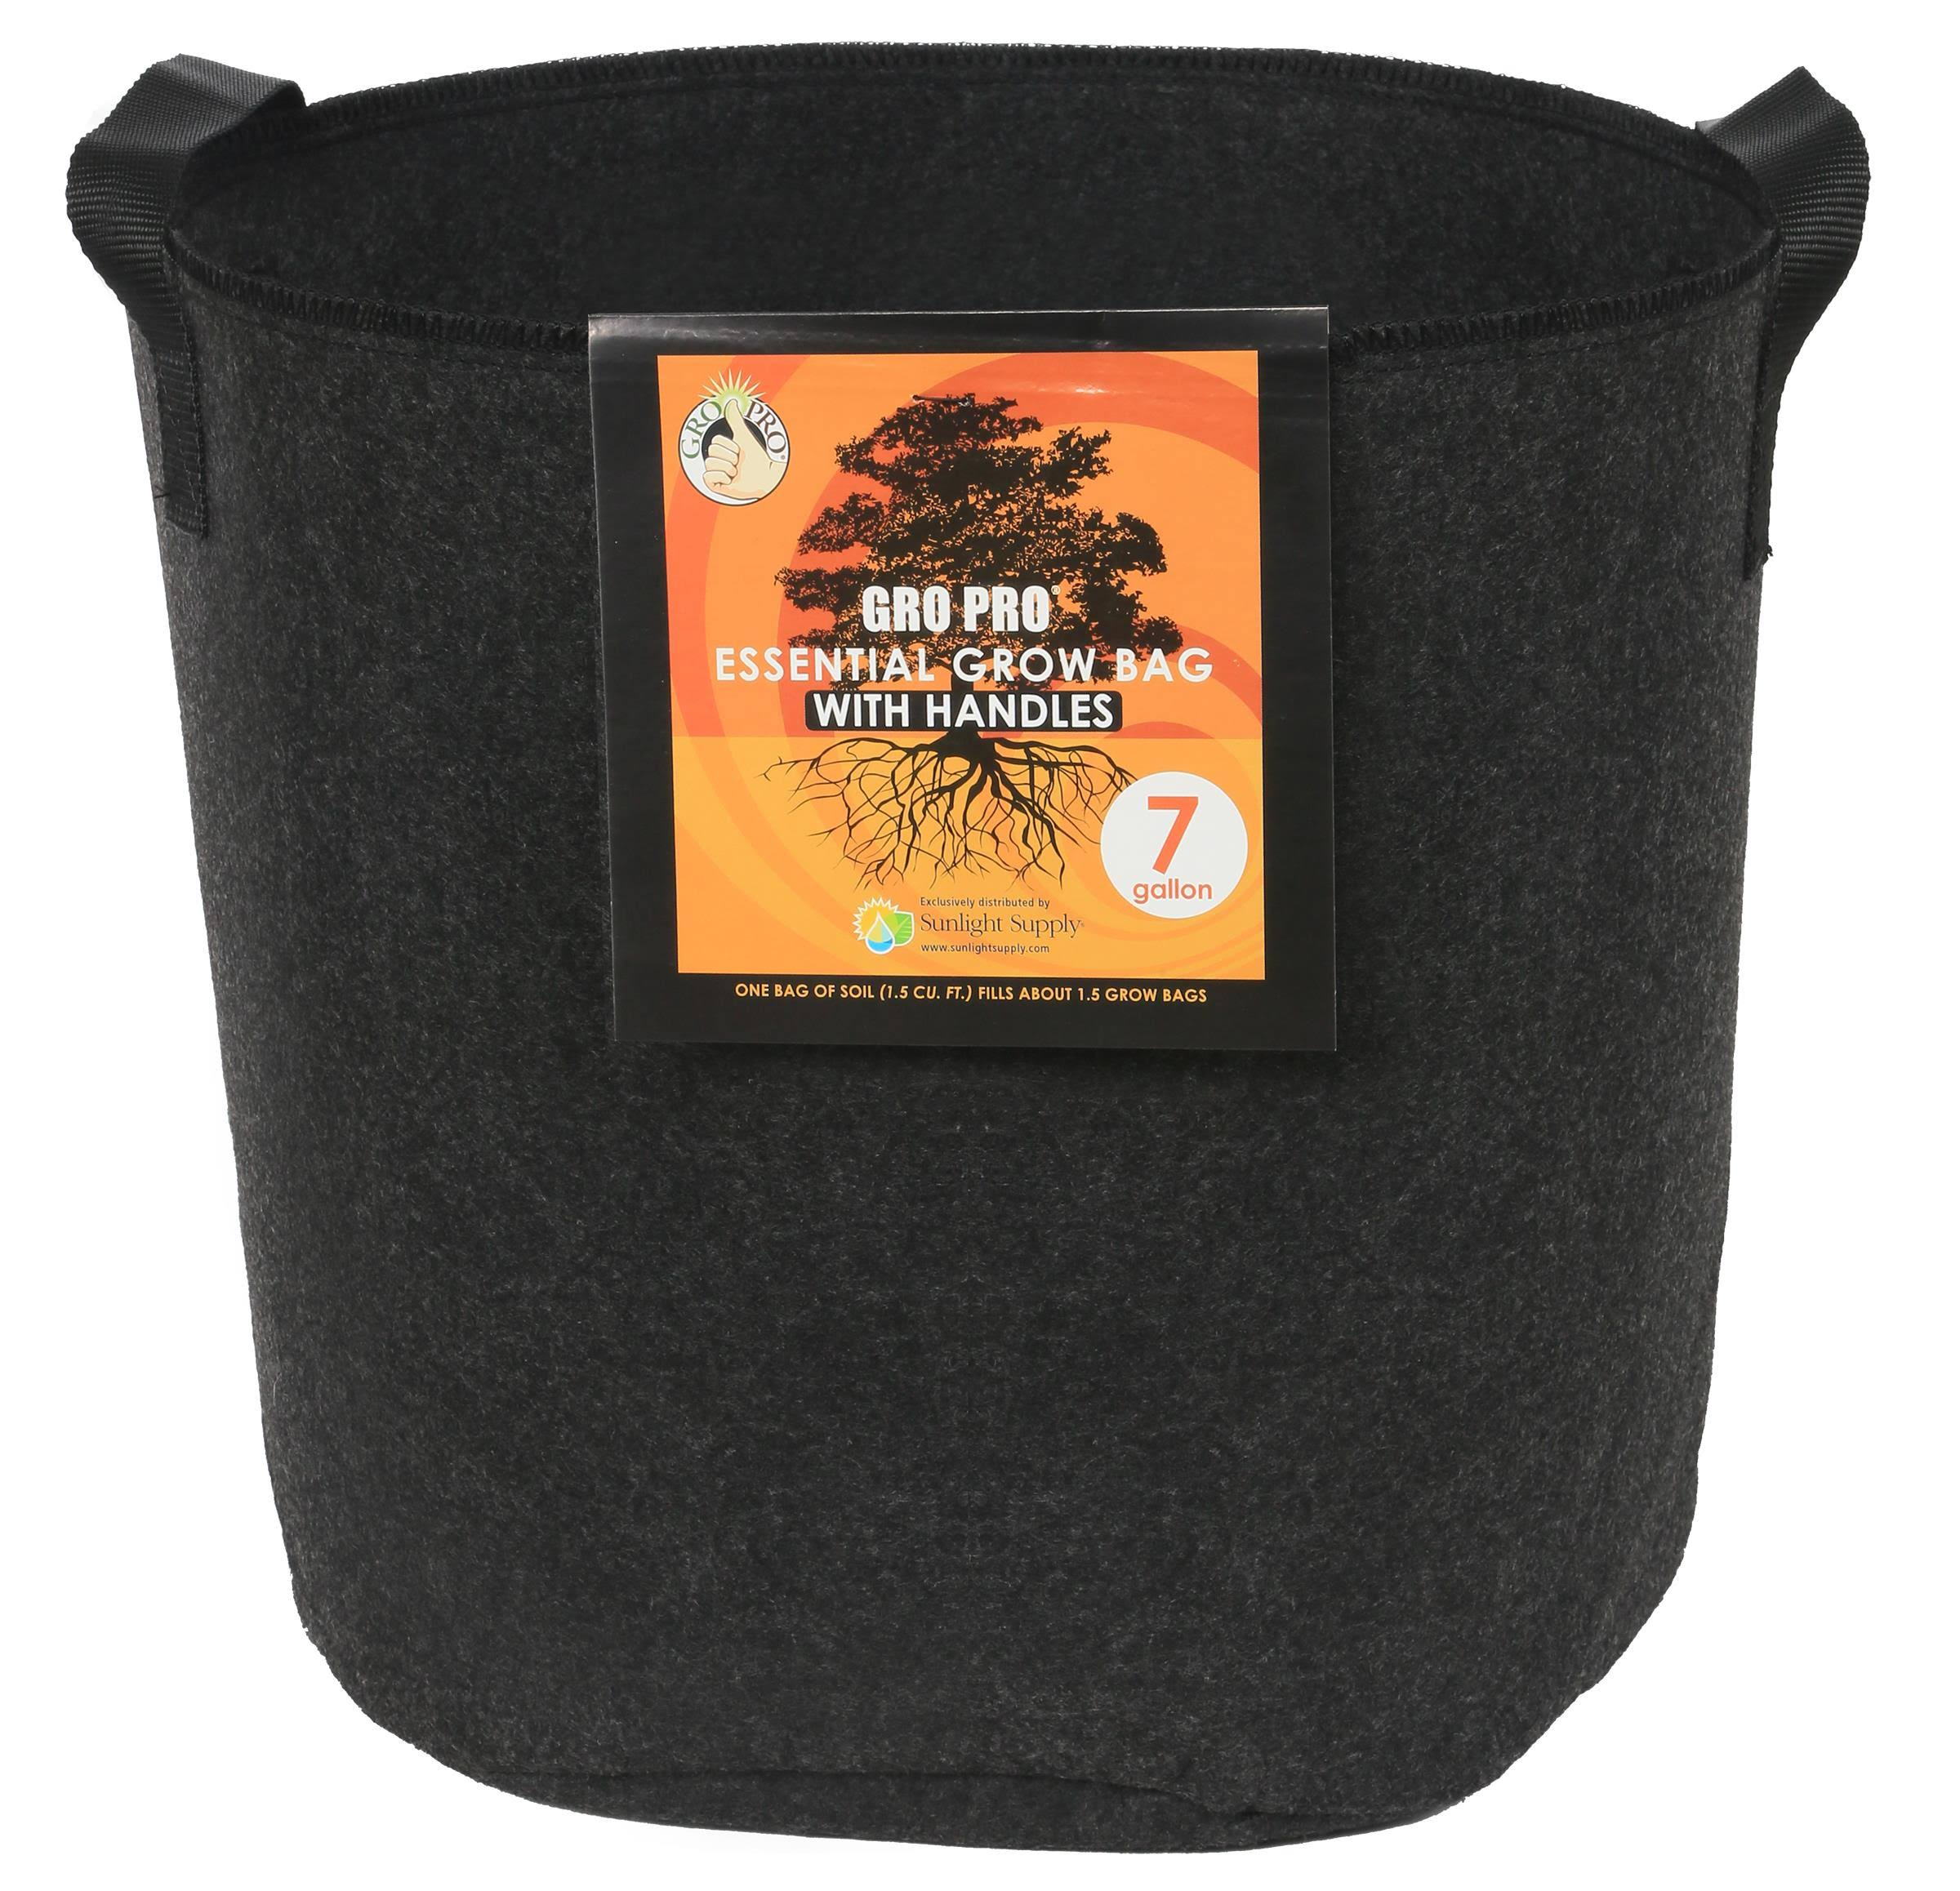 Gro Pro Essential Round Fabric Pot - with Handles, 7gal, Black